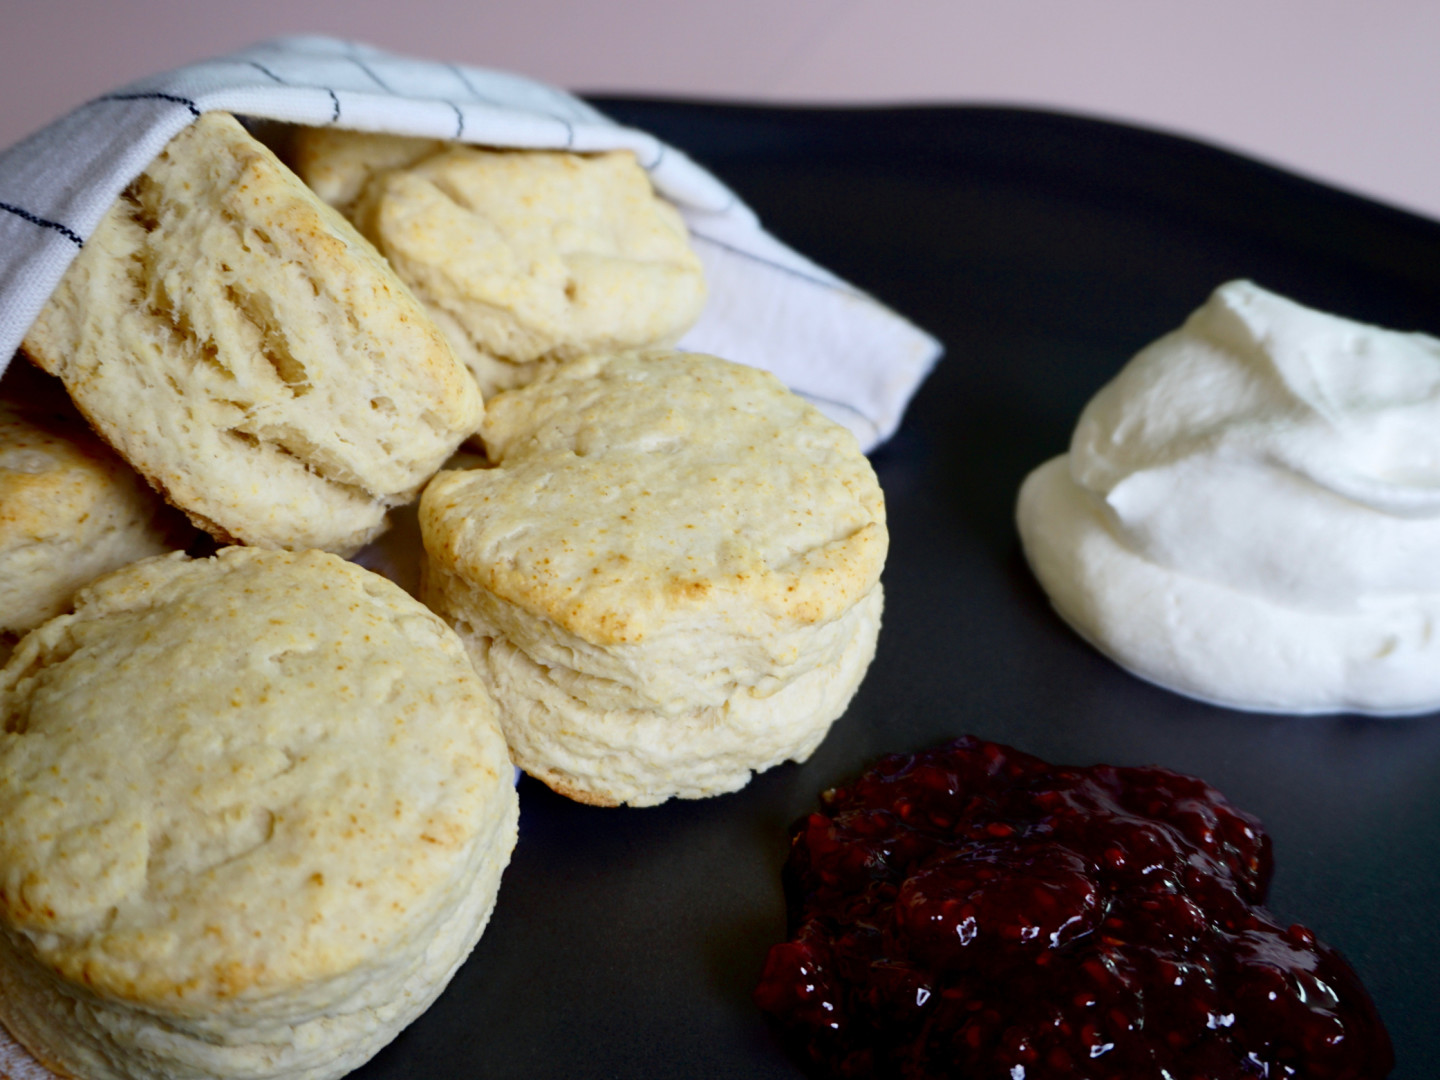 Irish scones with whipped cream and jam